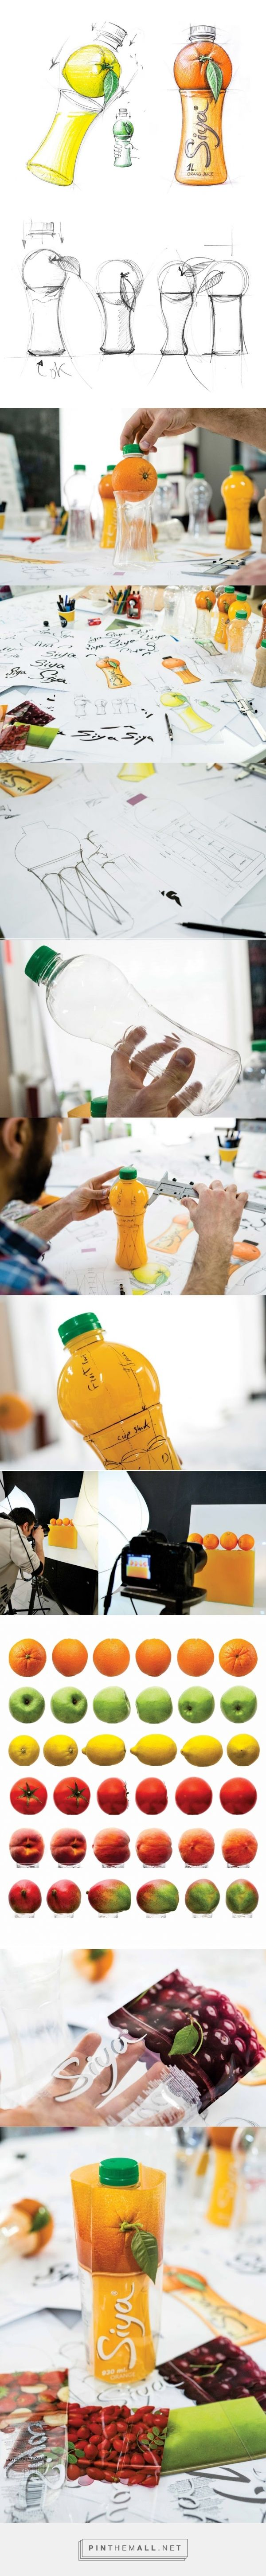 Siya Juice Packaging Development by Backbone Branding